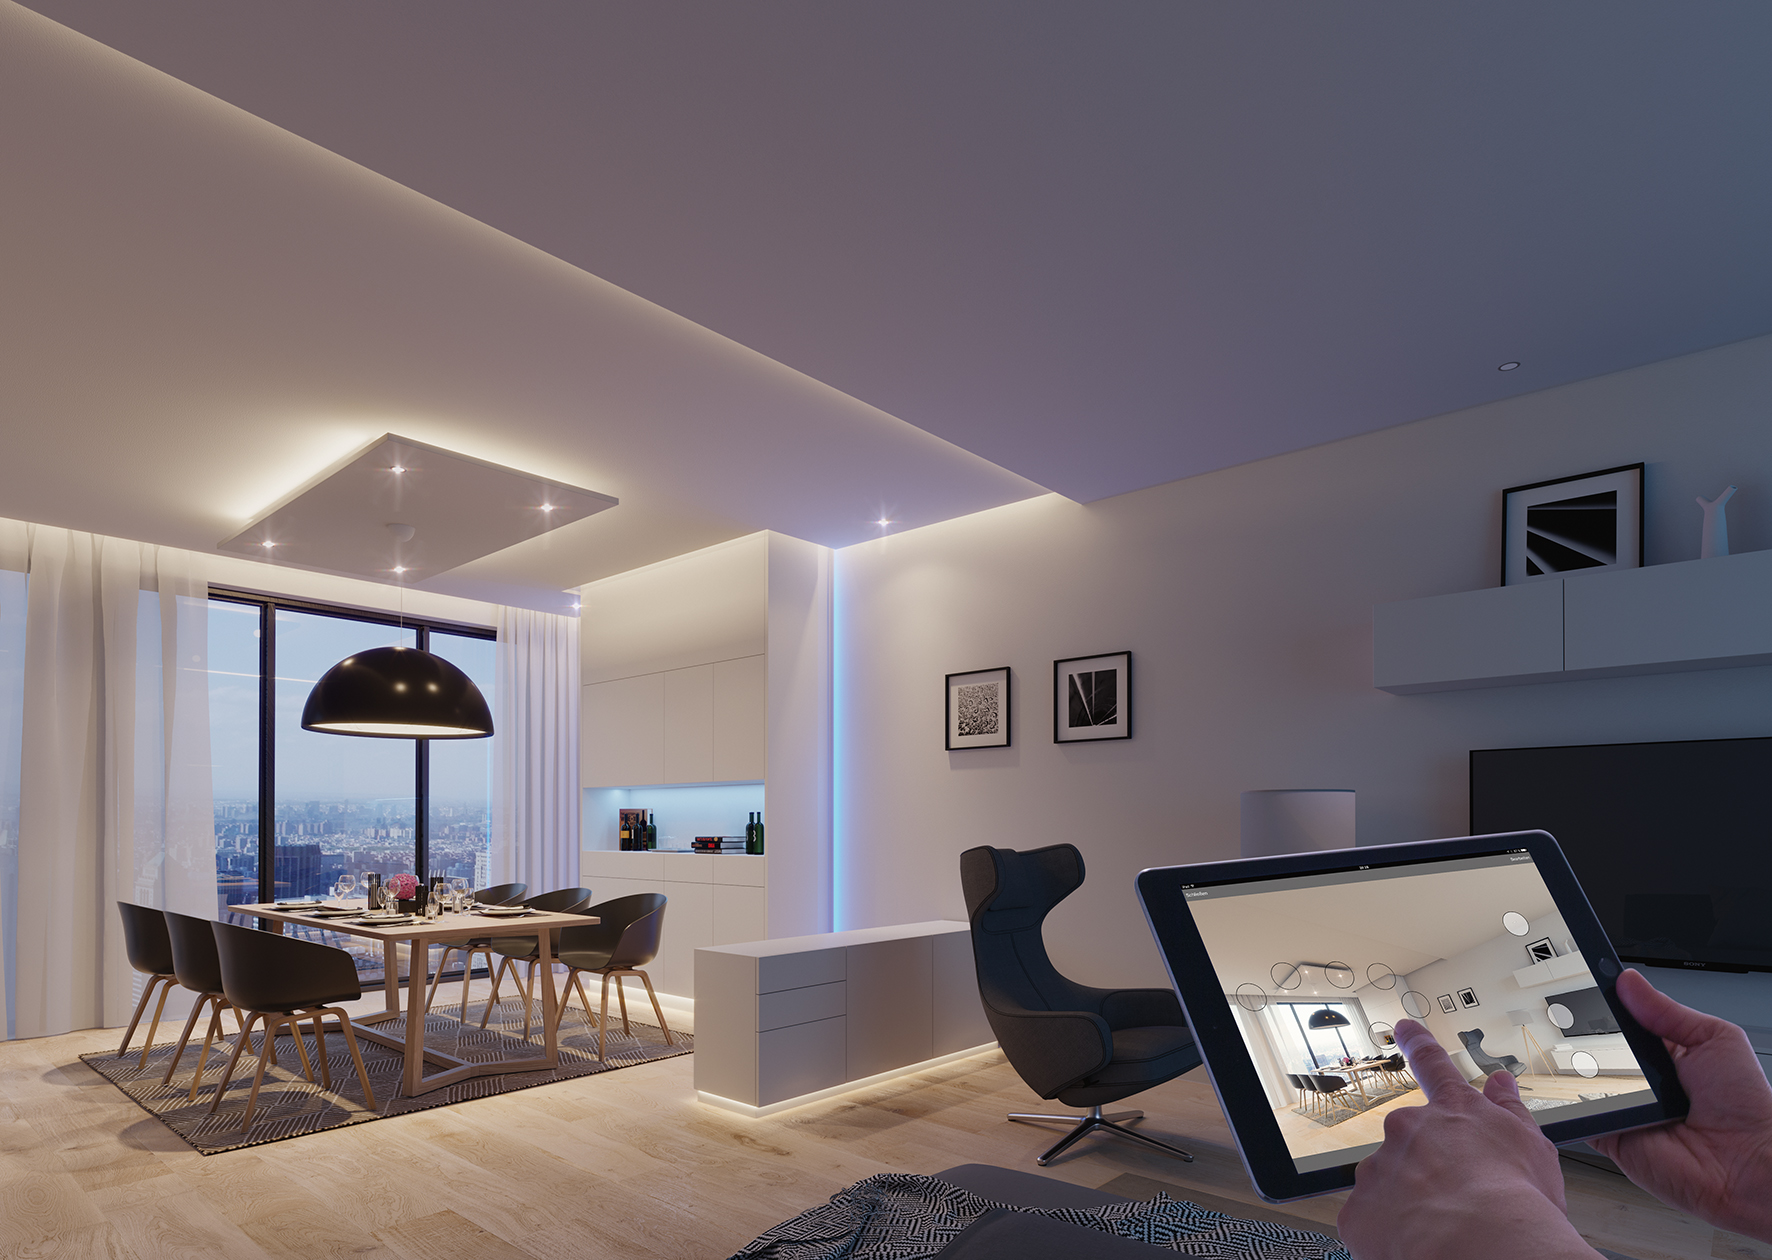 With an update of many products and the Häfele Connect App, the Loox LED lighting system will become the entry point into the smart world of furniture and rooms.